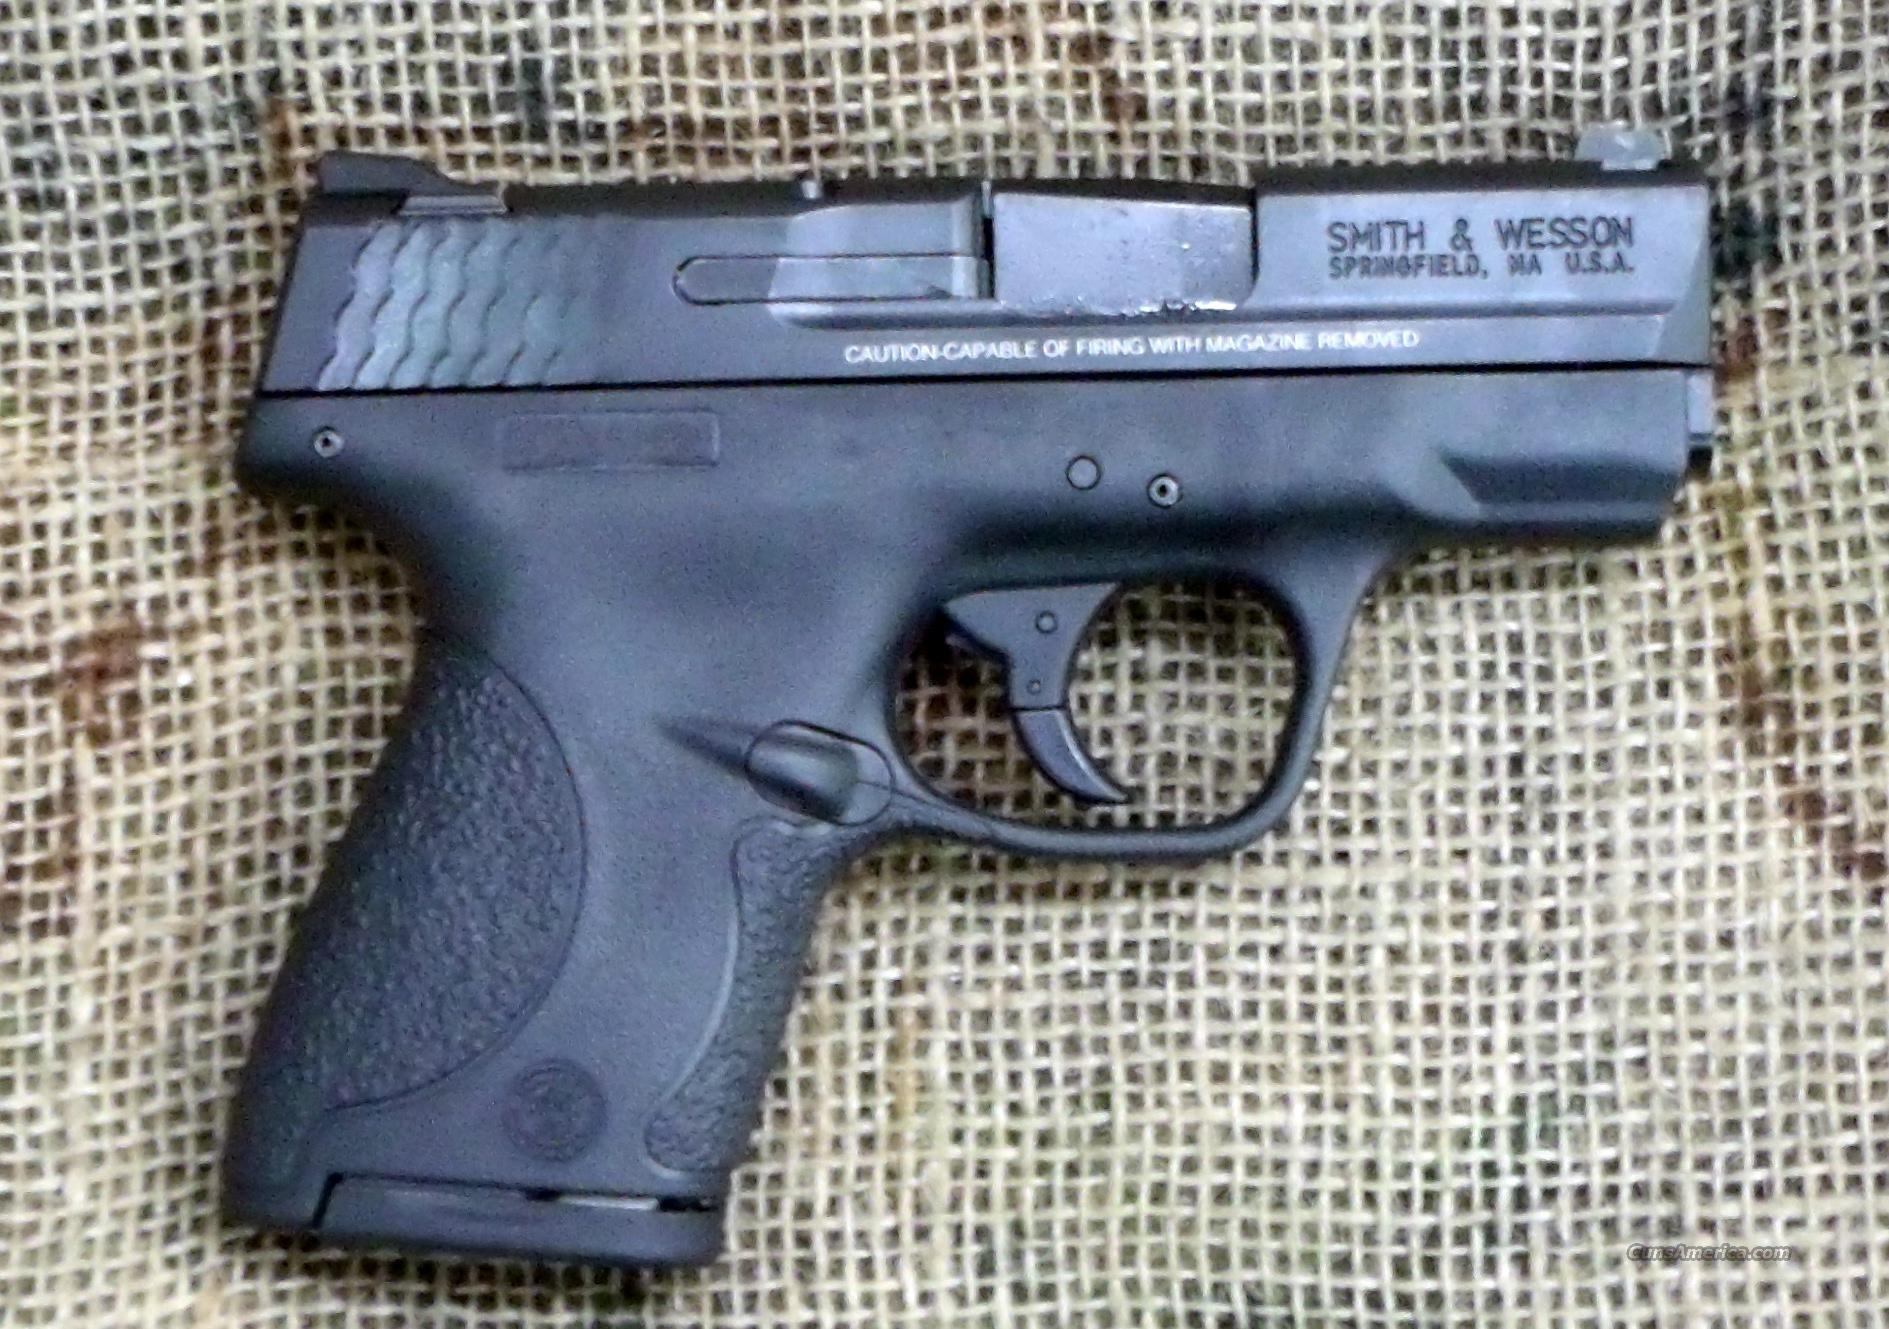 SMITH & WESSON M&P 40 Shield Pistol, 40 S&W Cal.  Guns > Pistols > Smith & Wesson Pistols - Autos > Polymer Frame